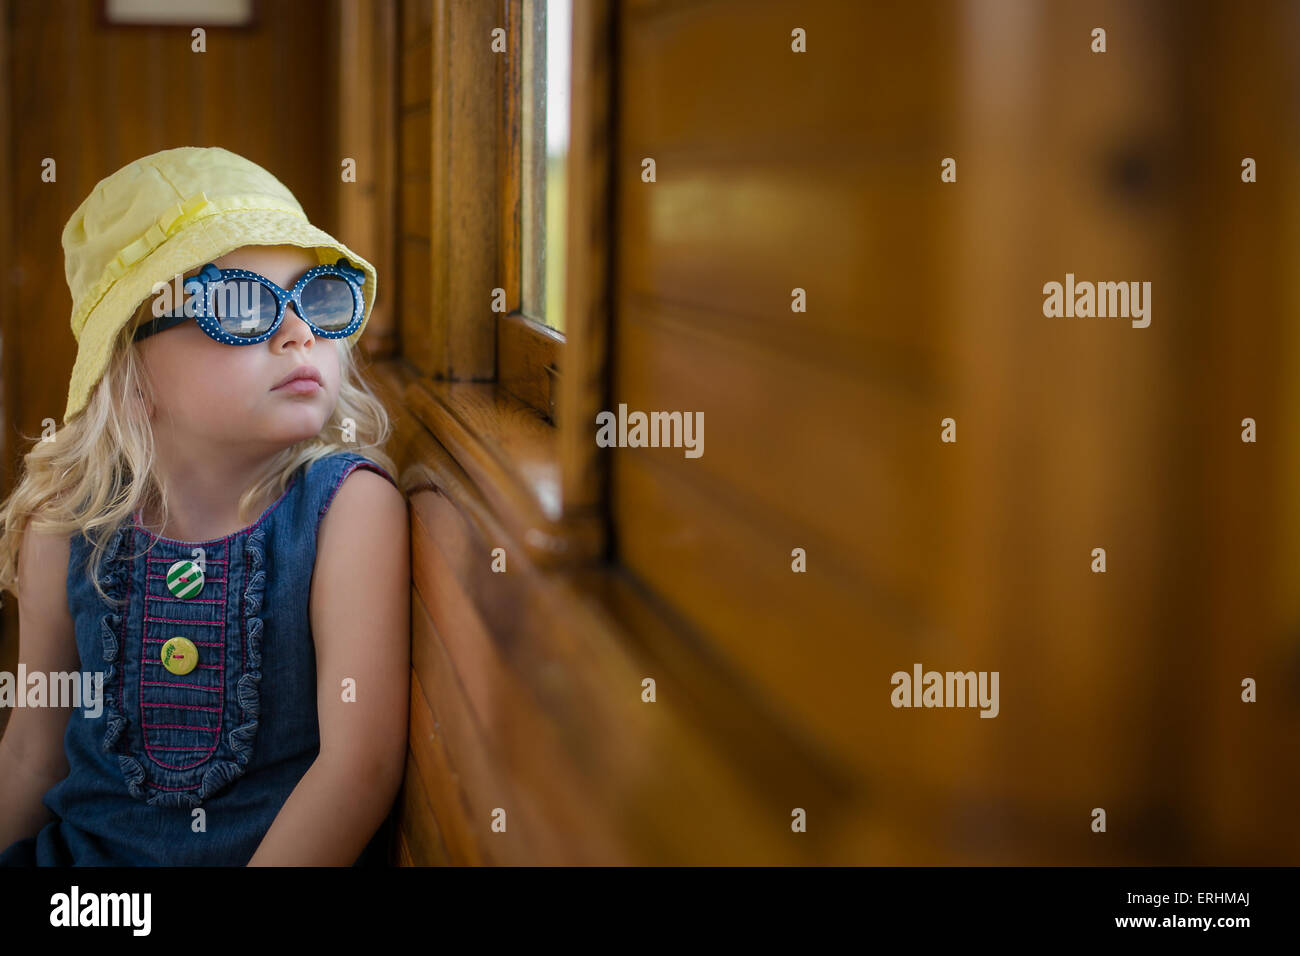 Girl on a train looking out of the window - Stock Image